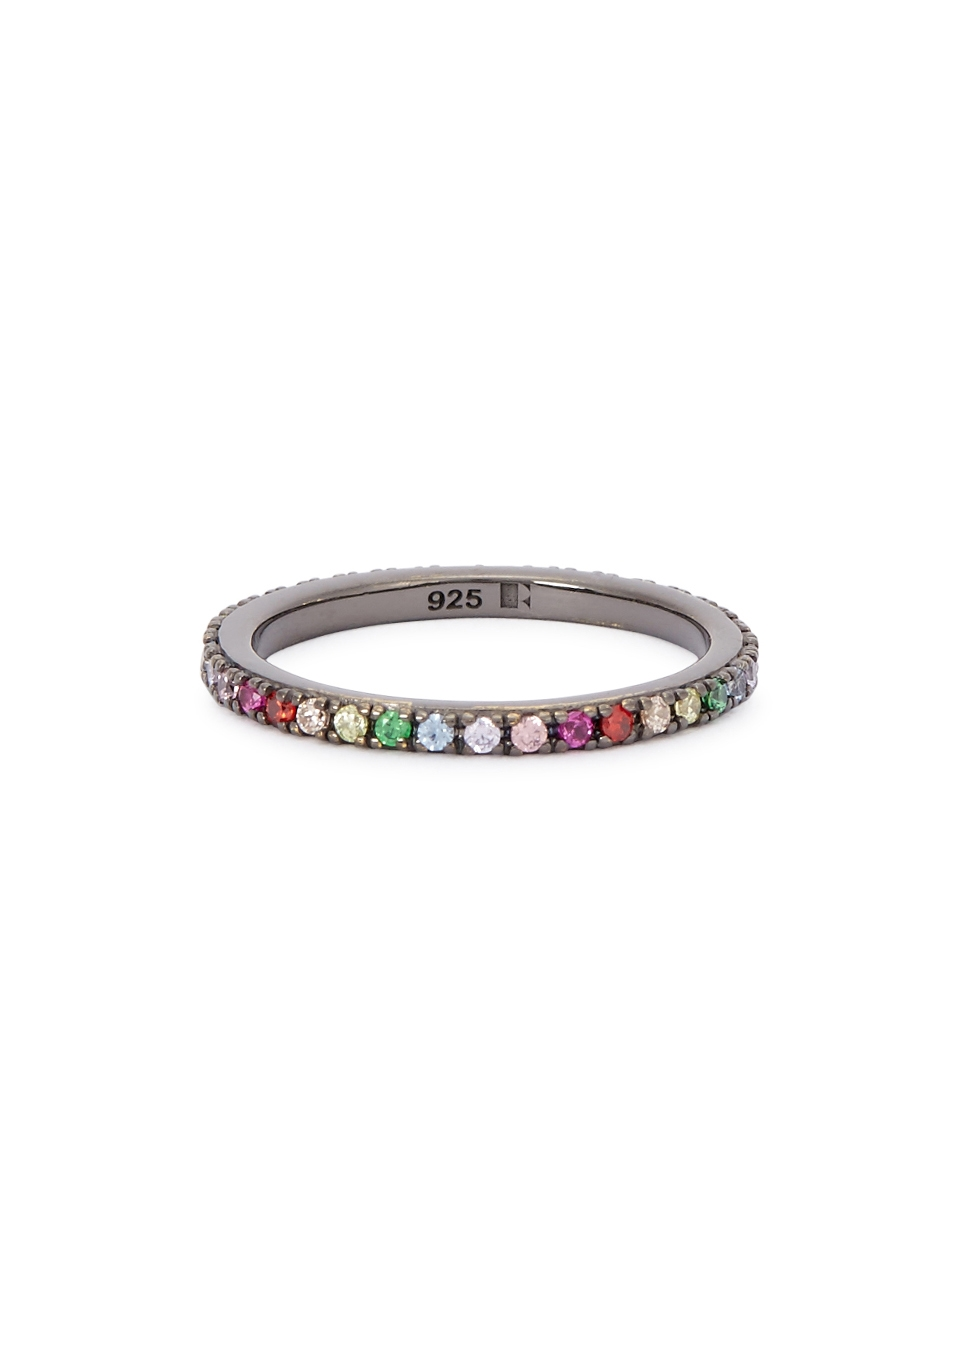 ROSIE FORTESCUE RHODIUM-PLATED STERLING SILVER RING